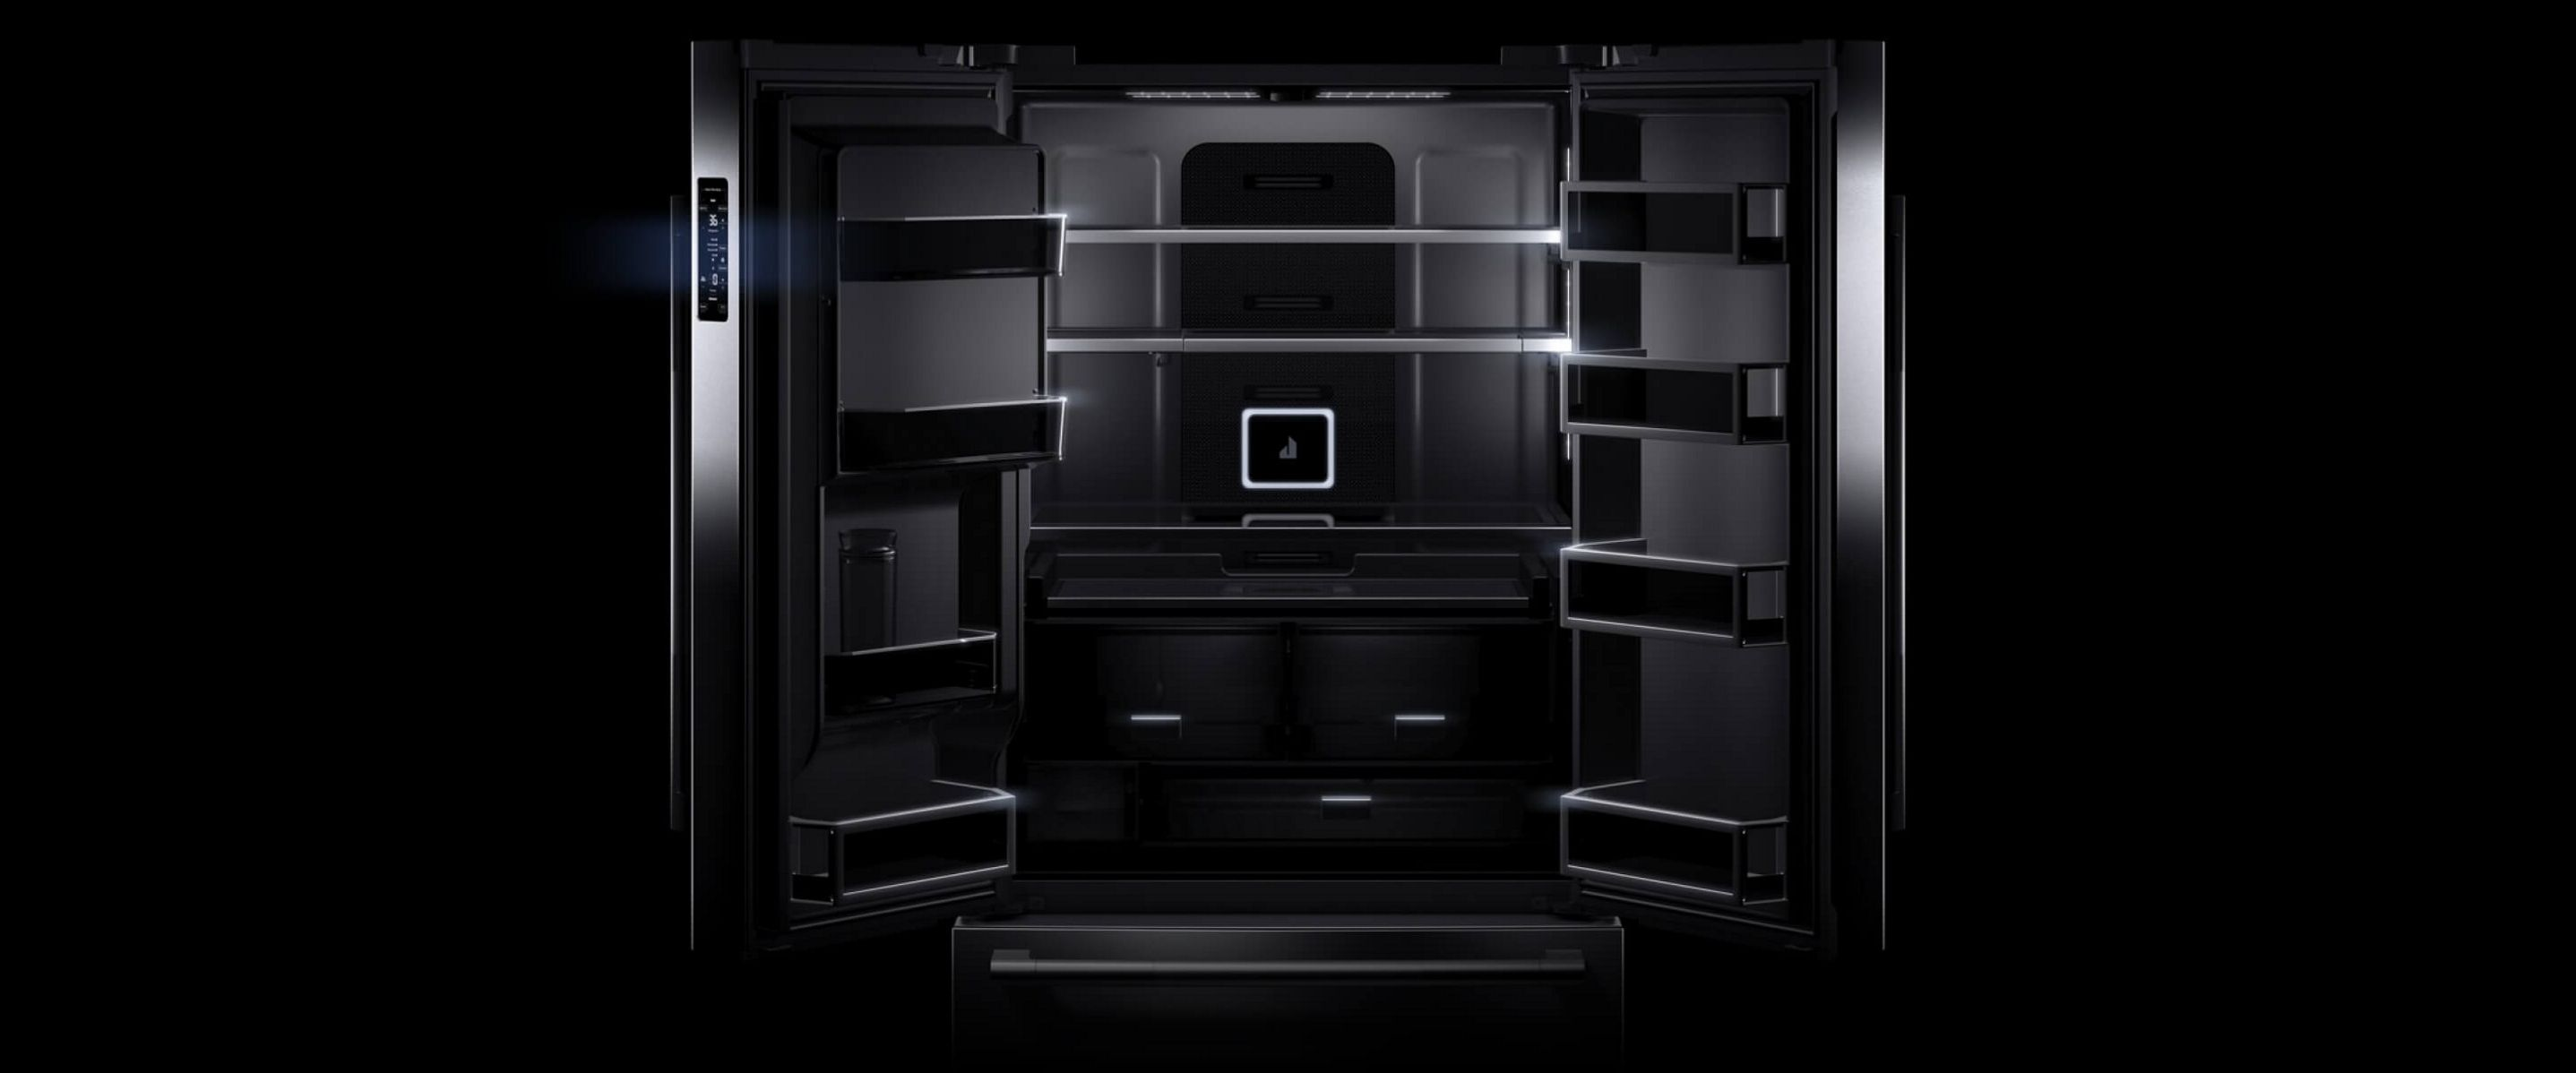 An open JennAir® French Door Refigerator with Obsidian Interior